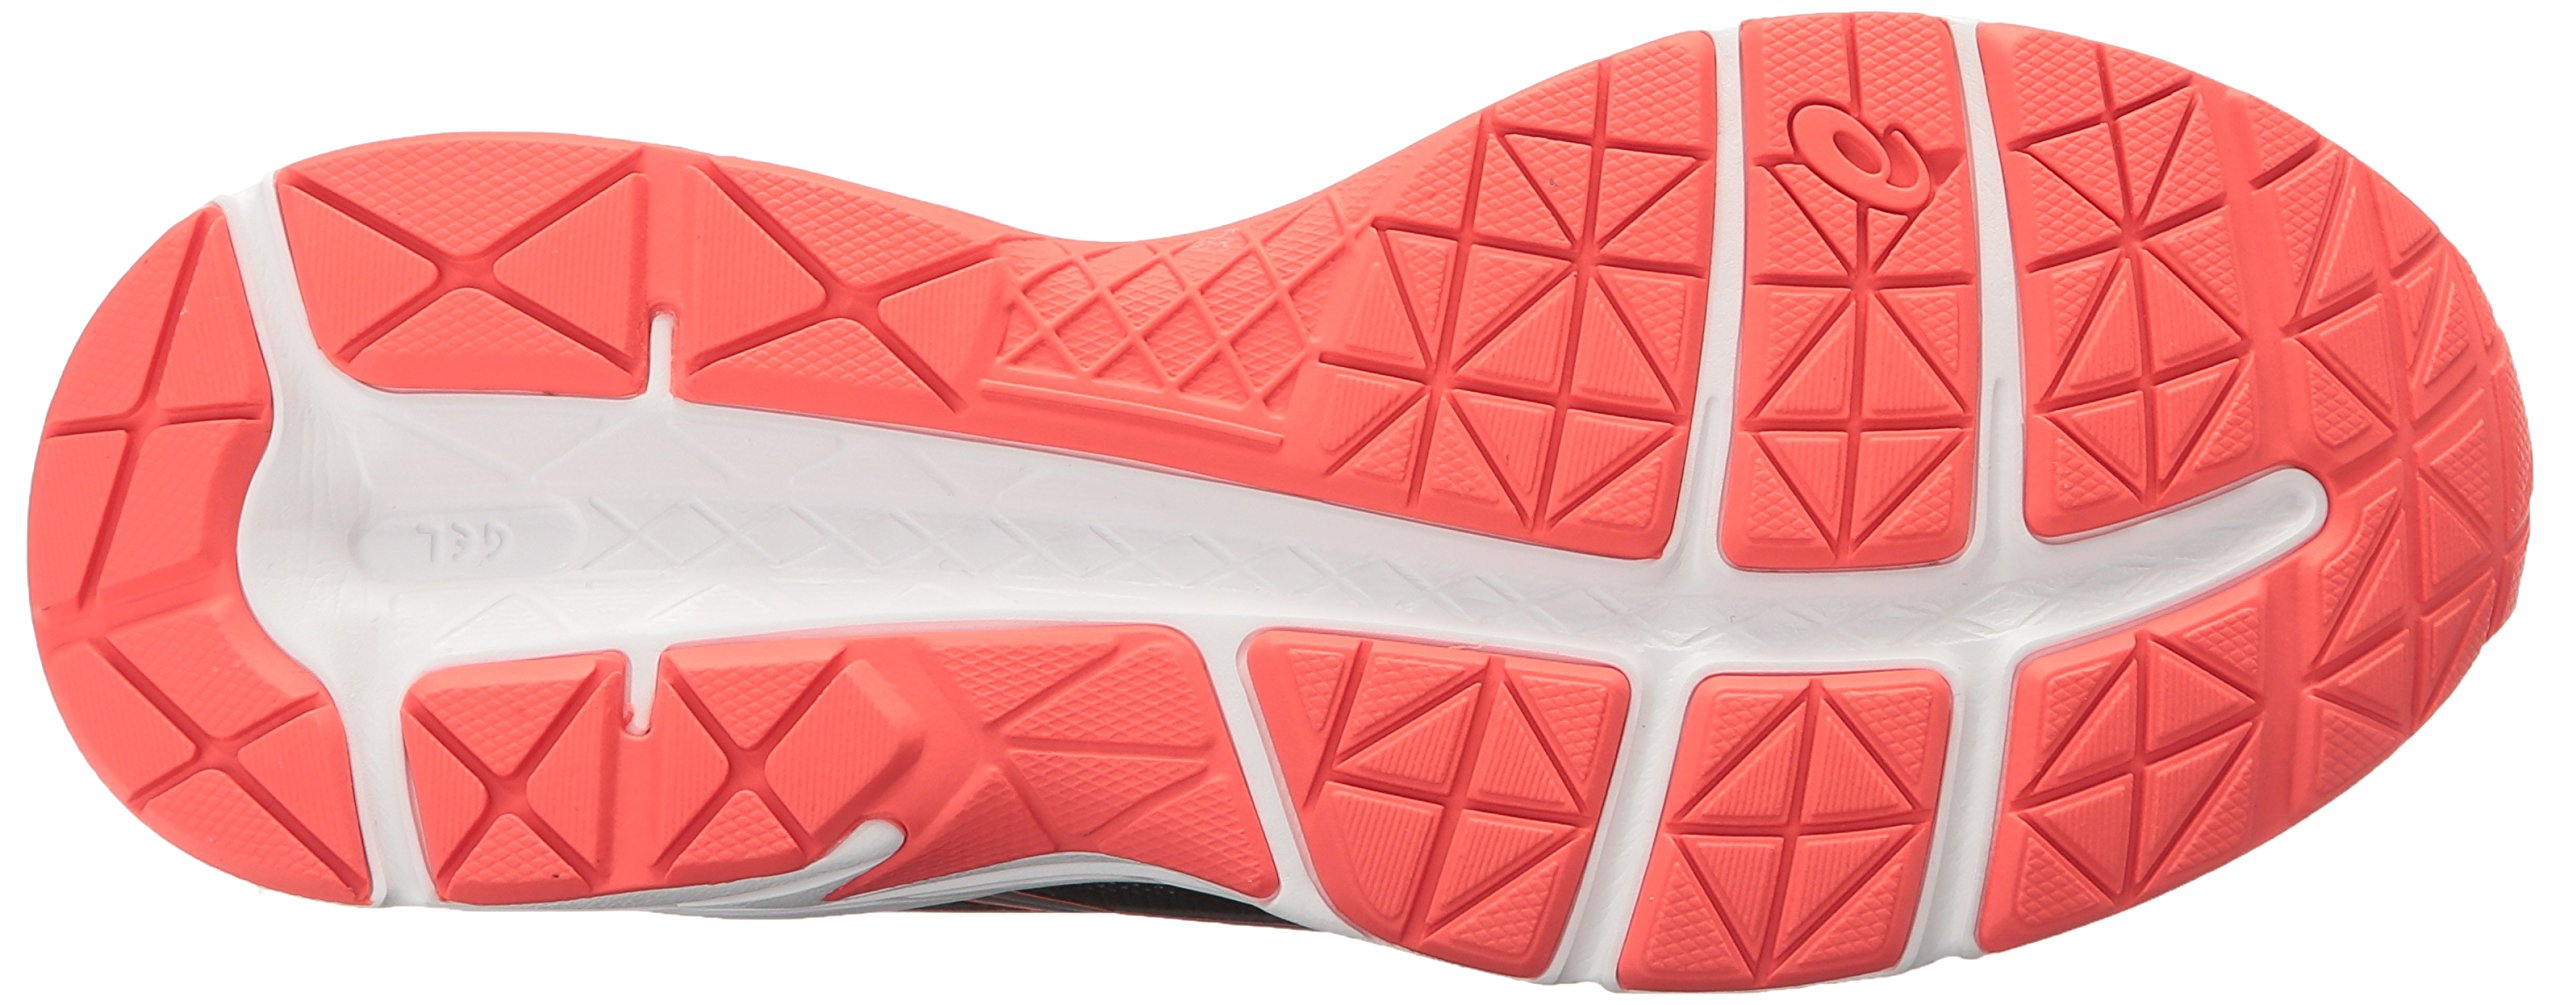 ASICS Women's Gel-Contend 4 Running Shoe, Black/Silver/Flash Coral, 5 M US by ASICS (Image #3)